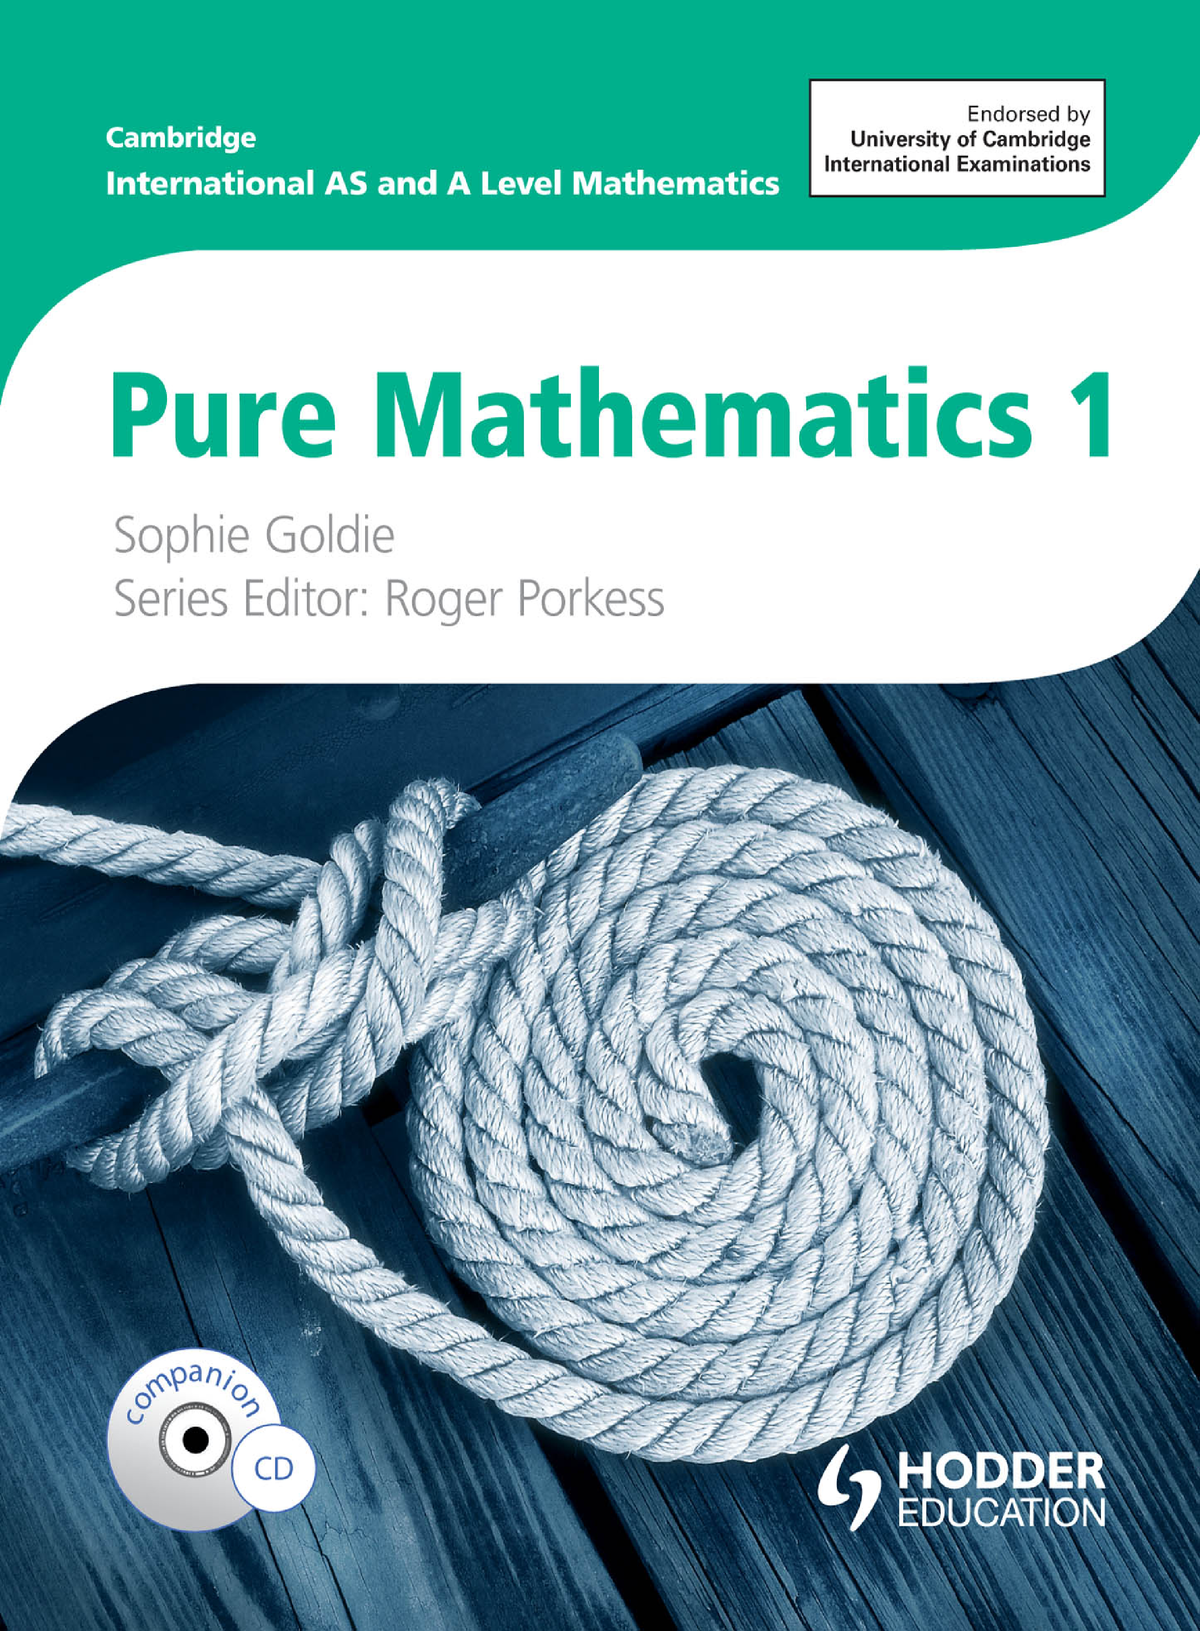 Cambridge International AS and A Level Mathematics Pure